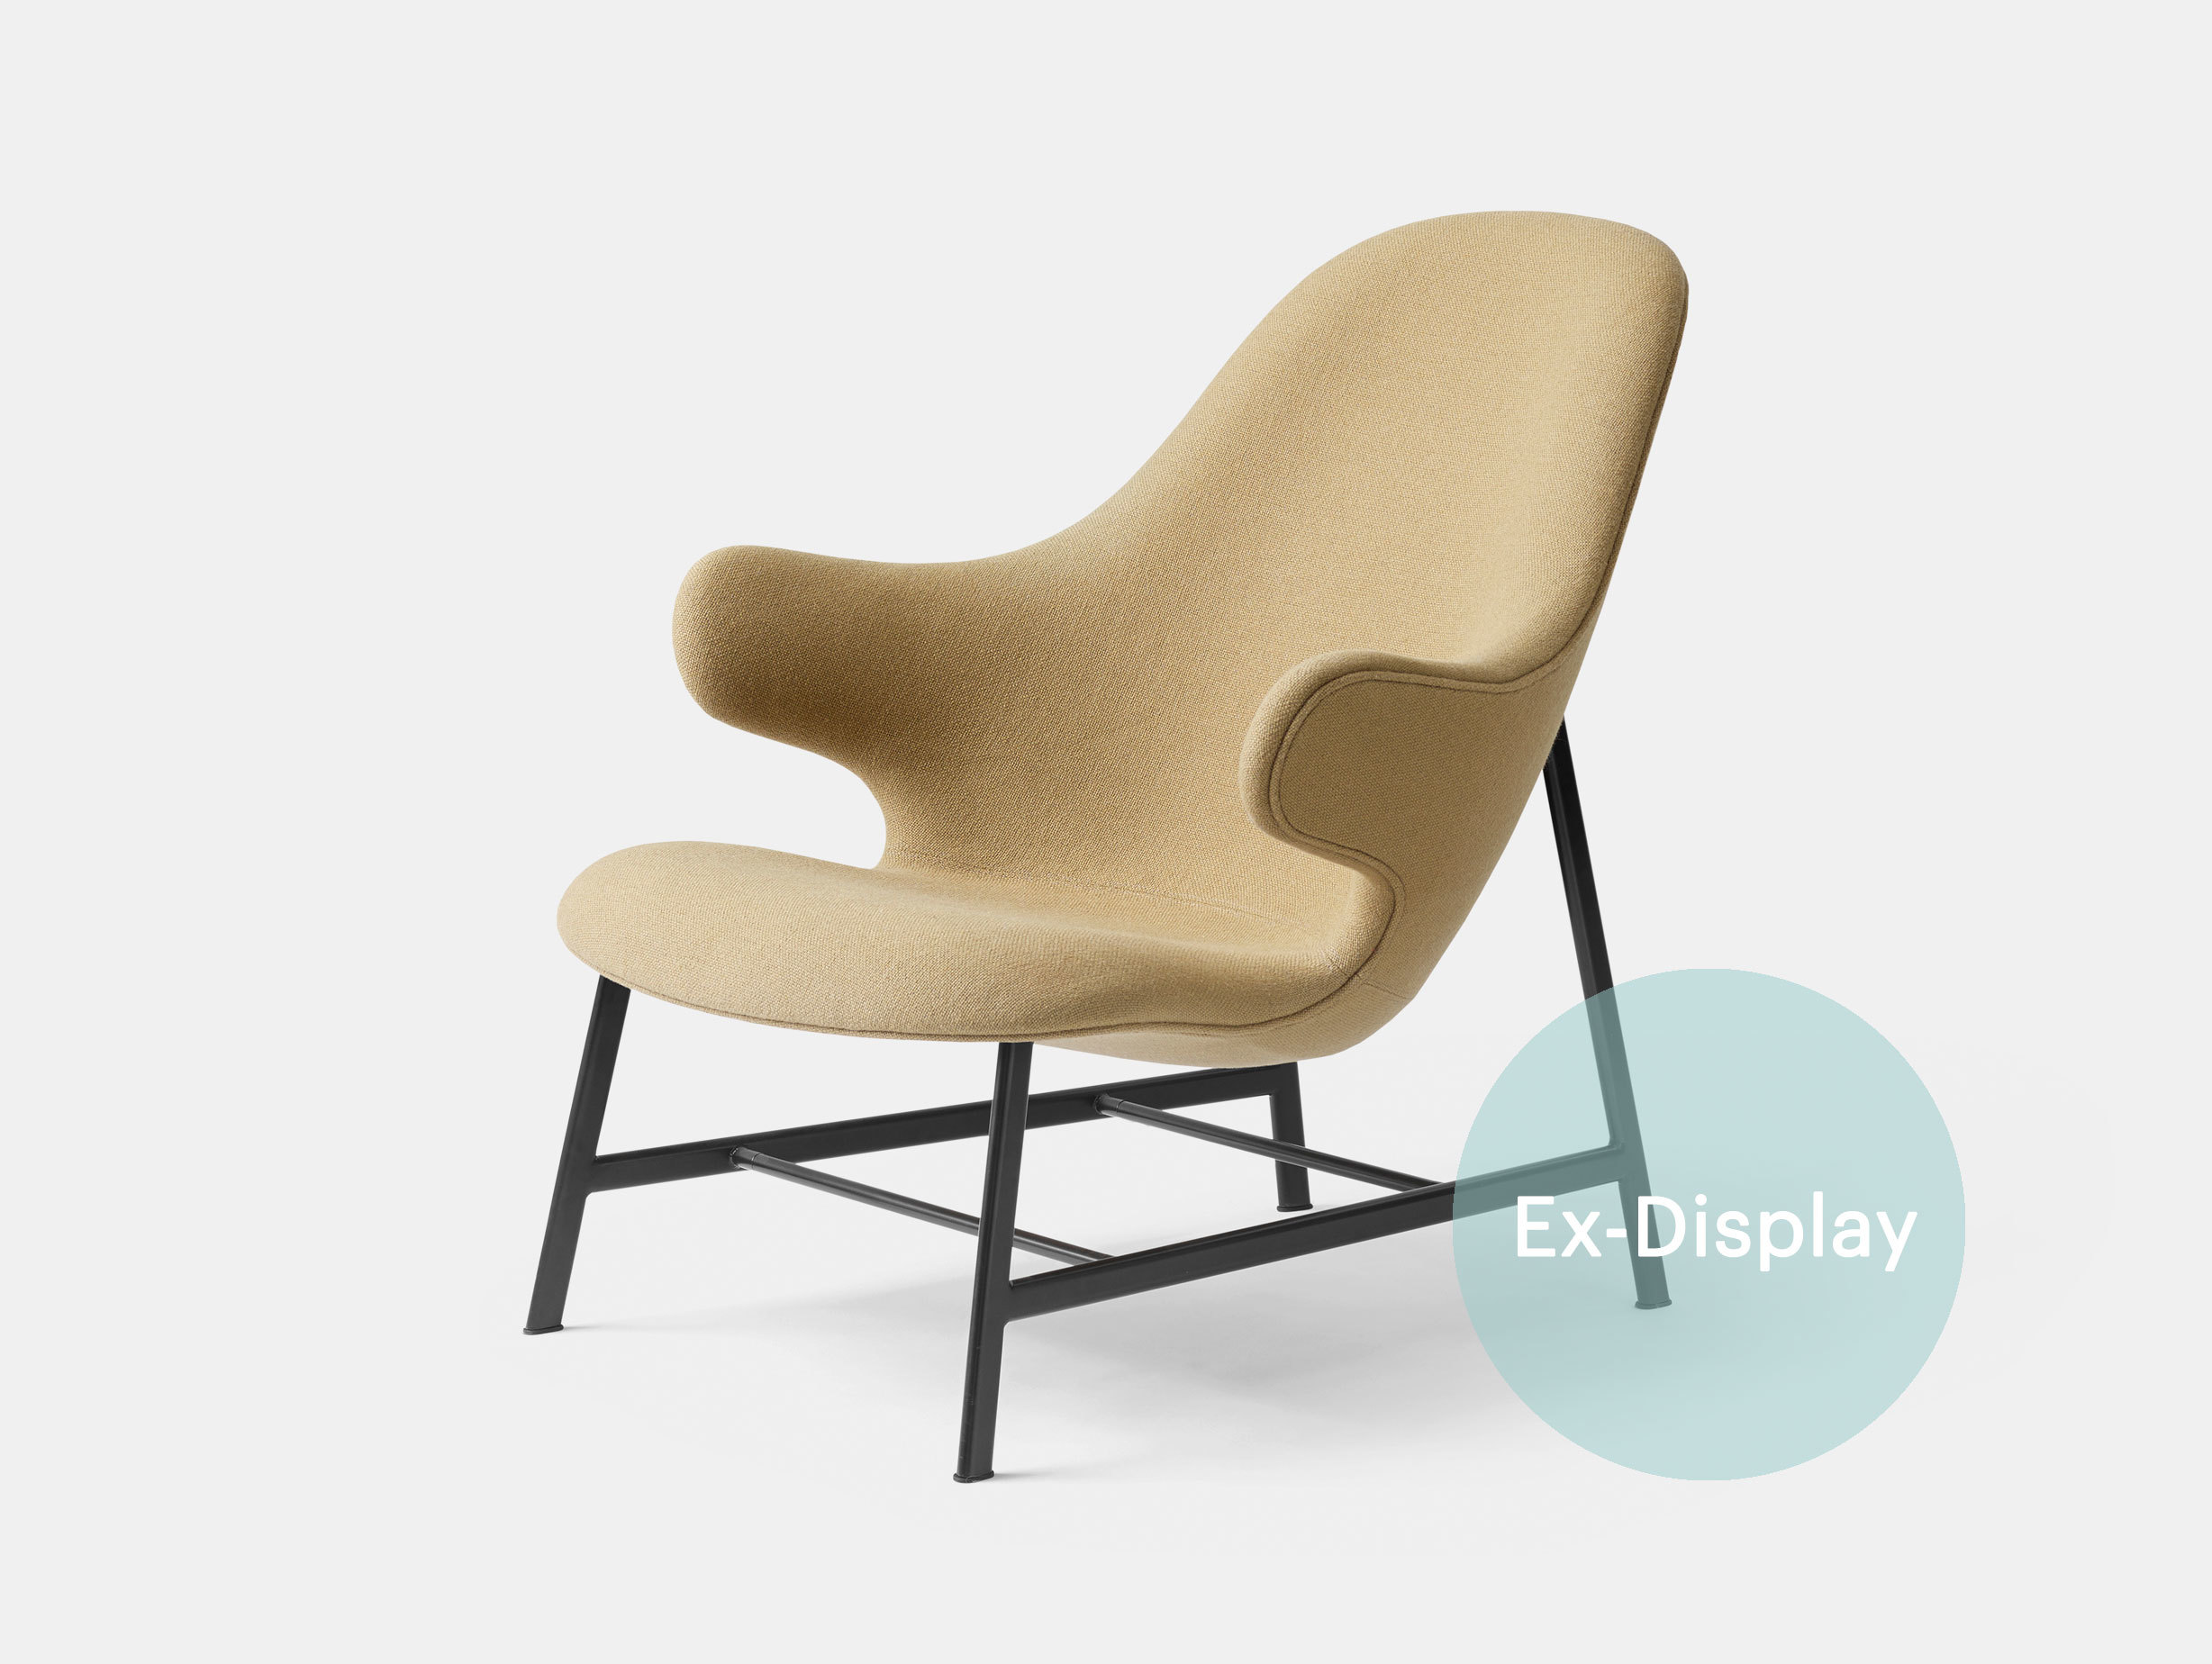 Ex Display 5 And Tradition Catch Lounge Chair Jaime Hayon